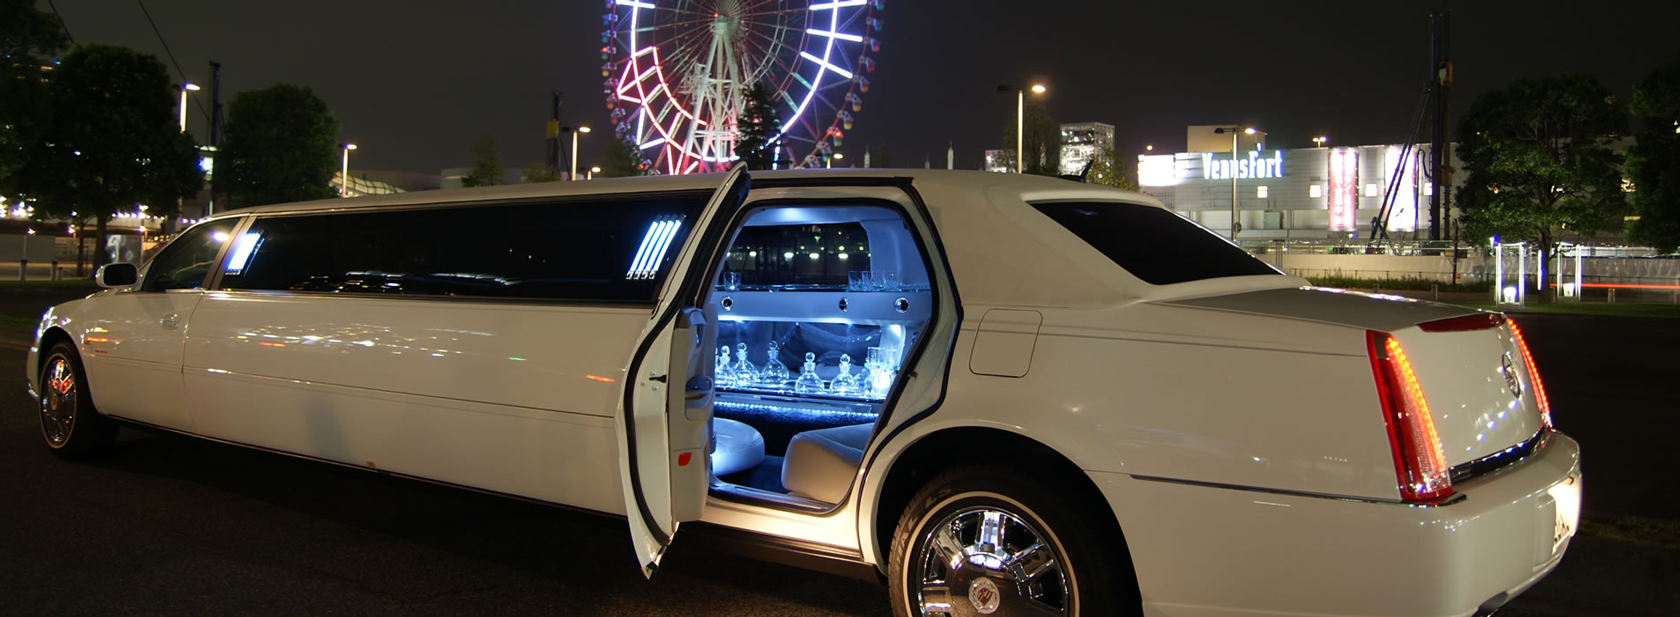 Limo For Sale >> Limo Sales Uk Party Buses For Sale Wedding Chauffeur